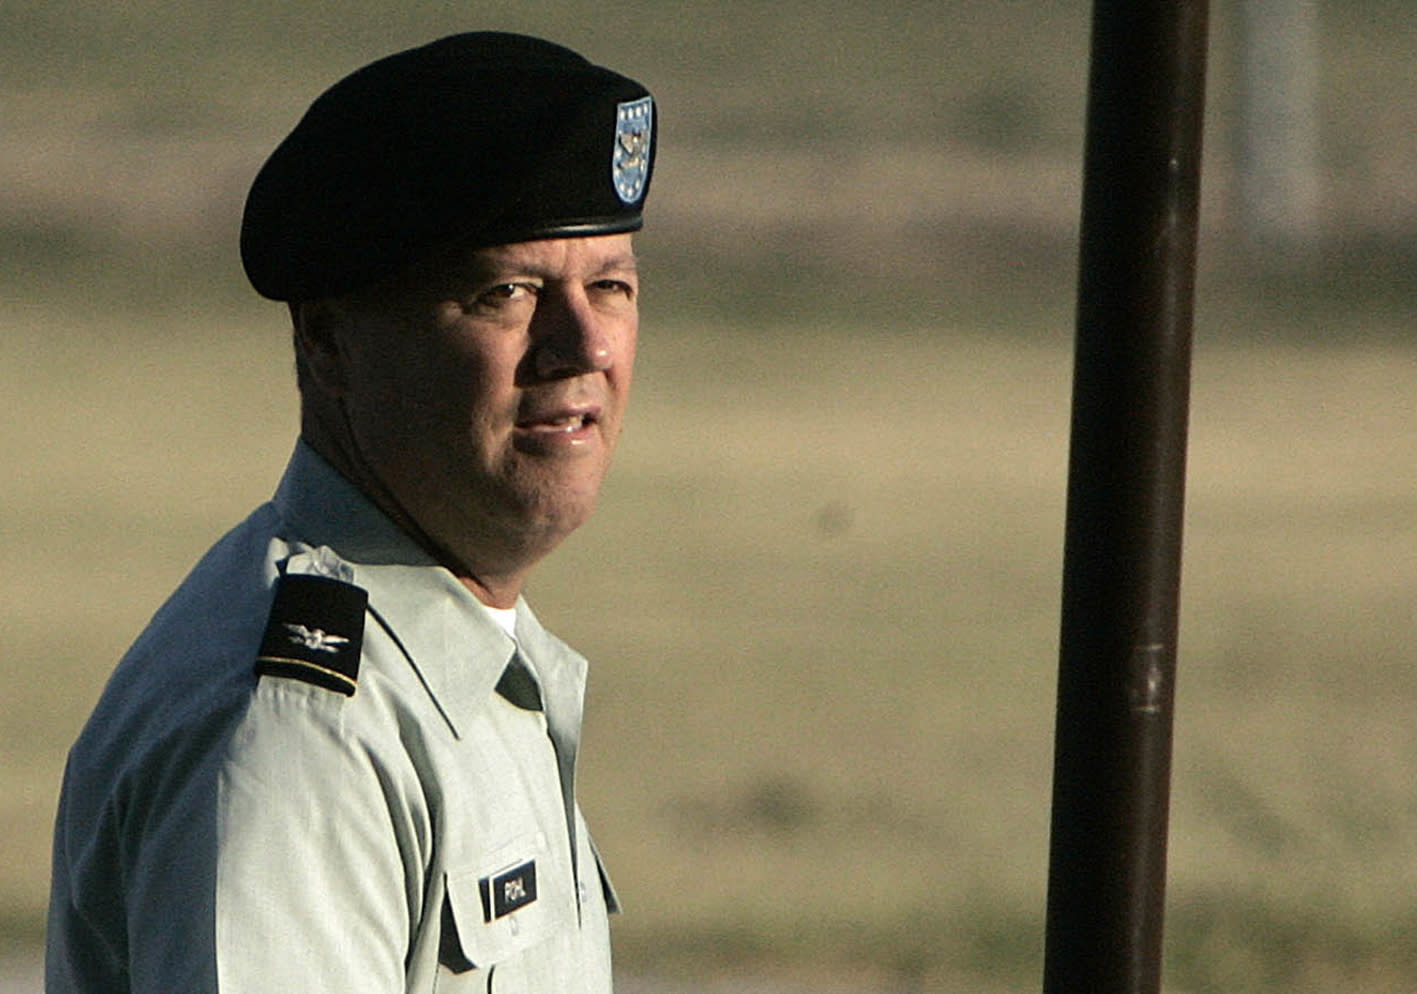 Judge in 9/11 case at Guantanamo retires from military